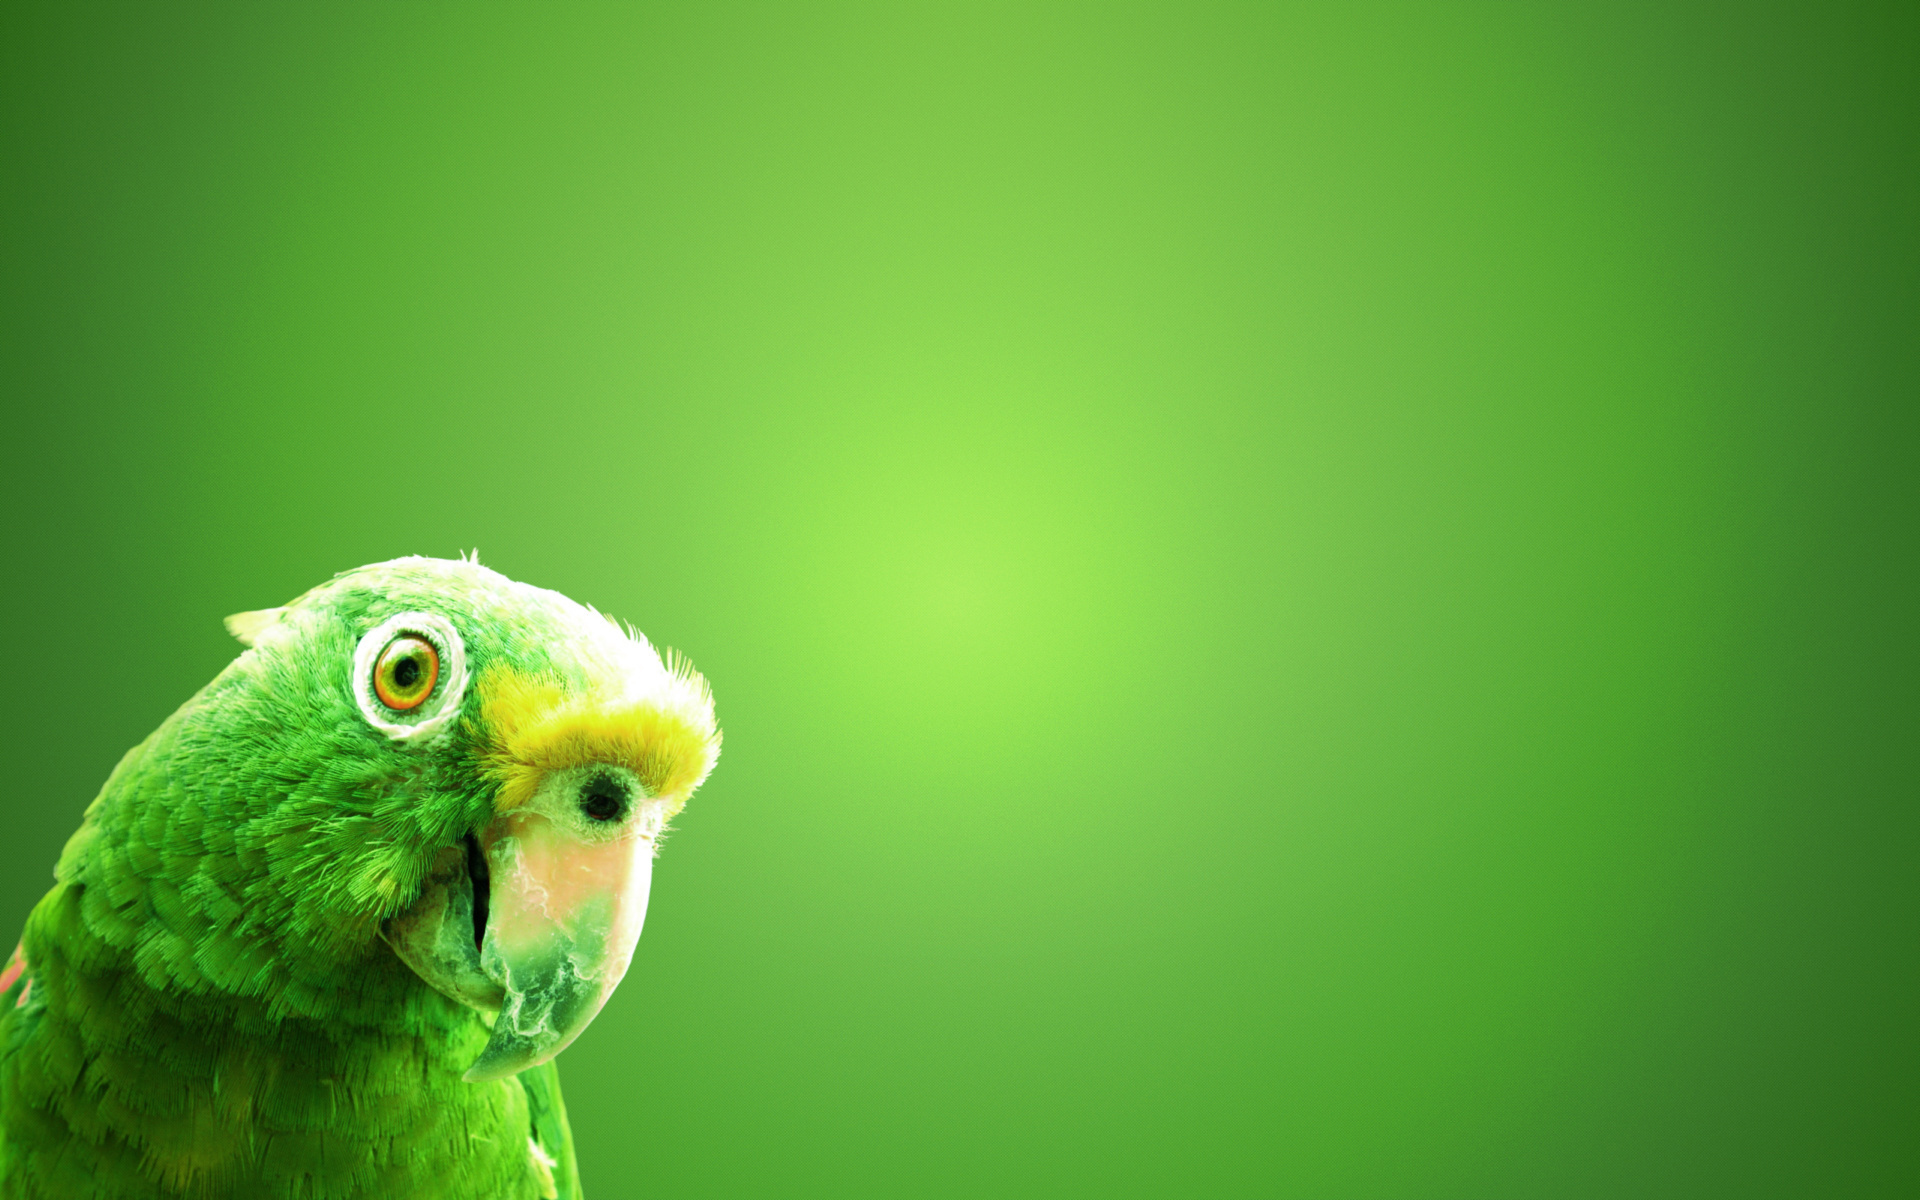 parrot green background